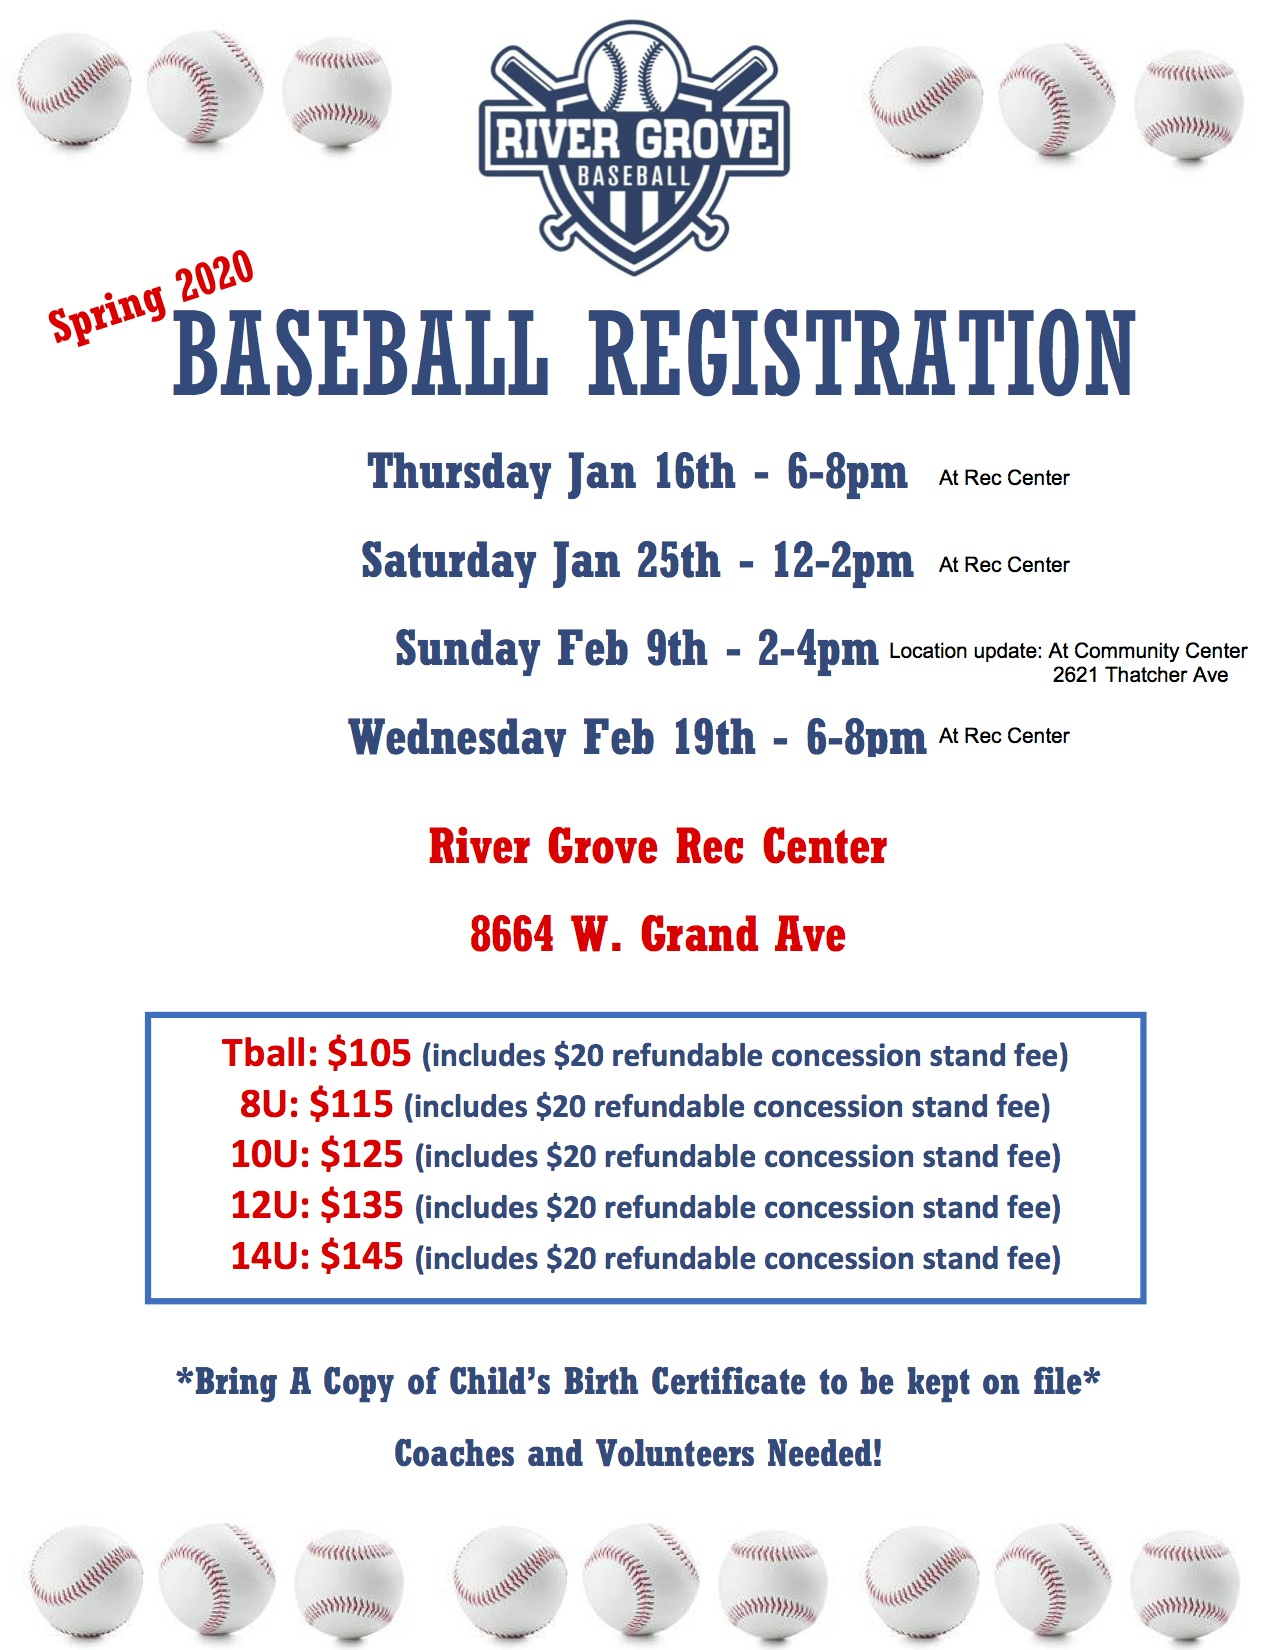 Flyer with little league baseball registration information